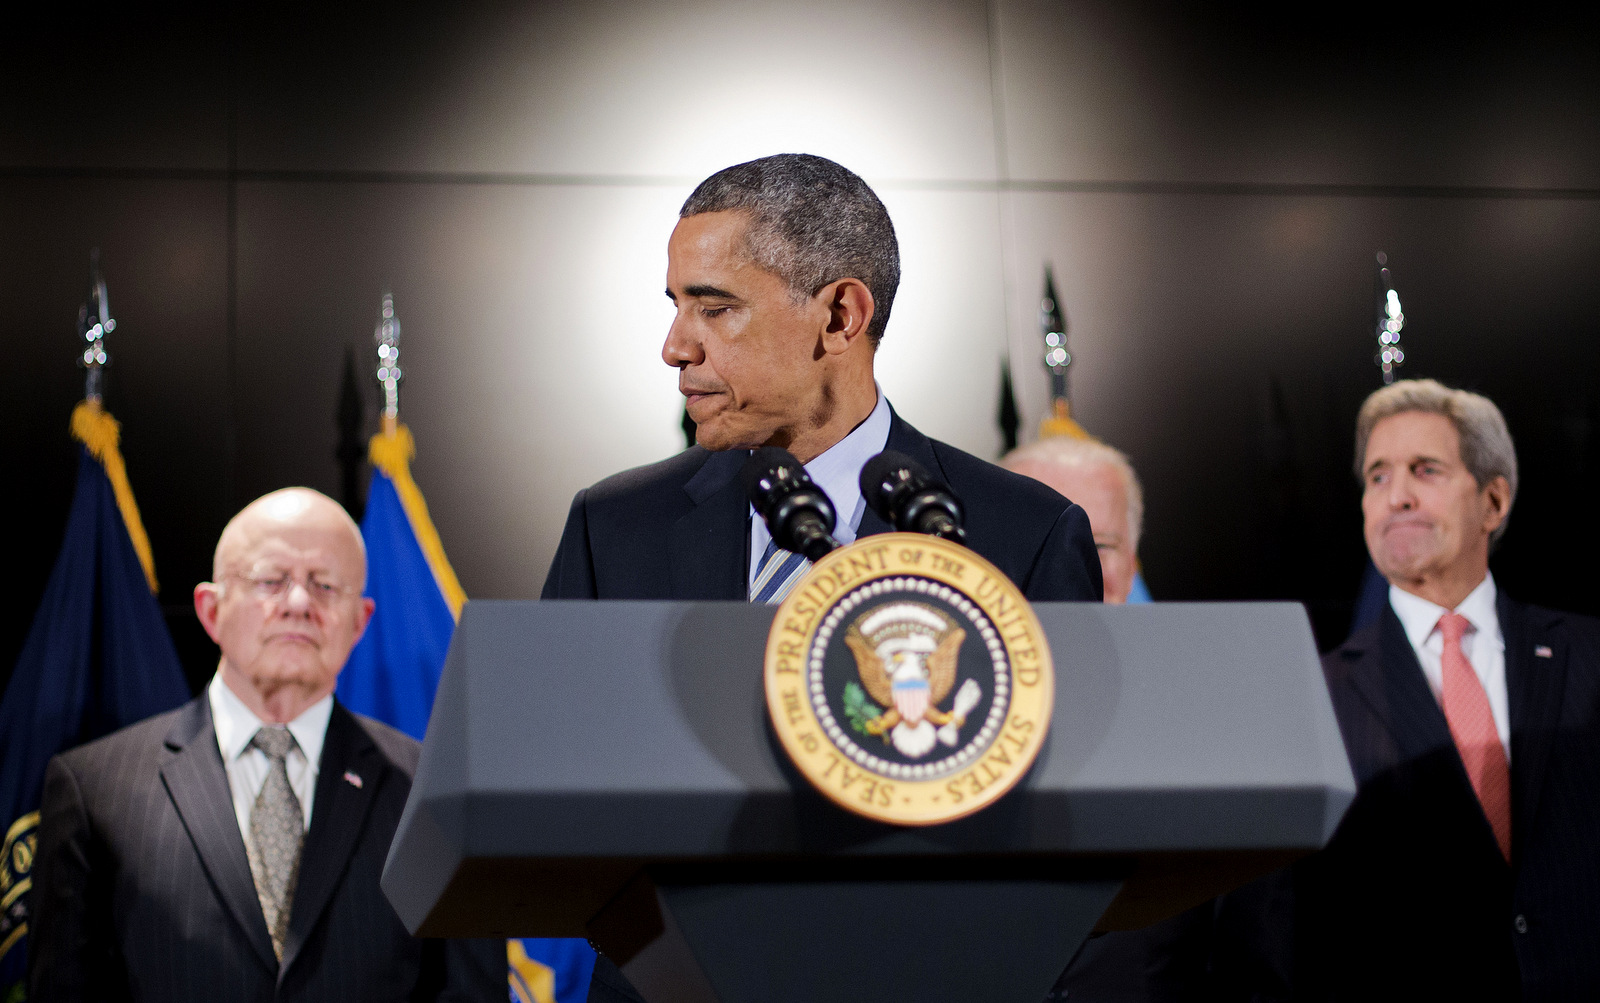 President Barack Obama, accompanied by, from left, Office of National Intelligence Director James Clapper, Vice President Joe Biden, and Secretary of State John Kerry, walks away from the podium after speaking at the National Counterterrorism Center in McLean, Va.,Thursday, Dec. 17, 2015. (AP Photo/Pablo Martinez Monsivais)